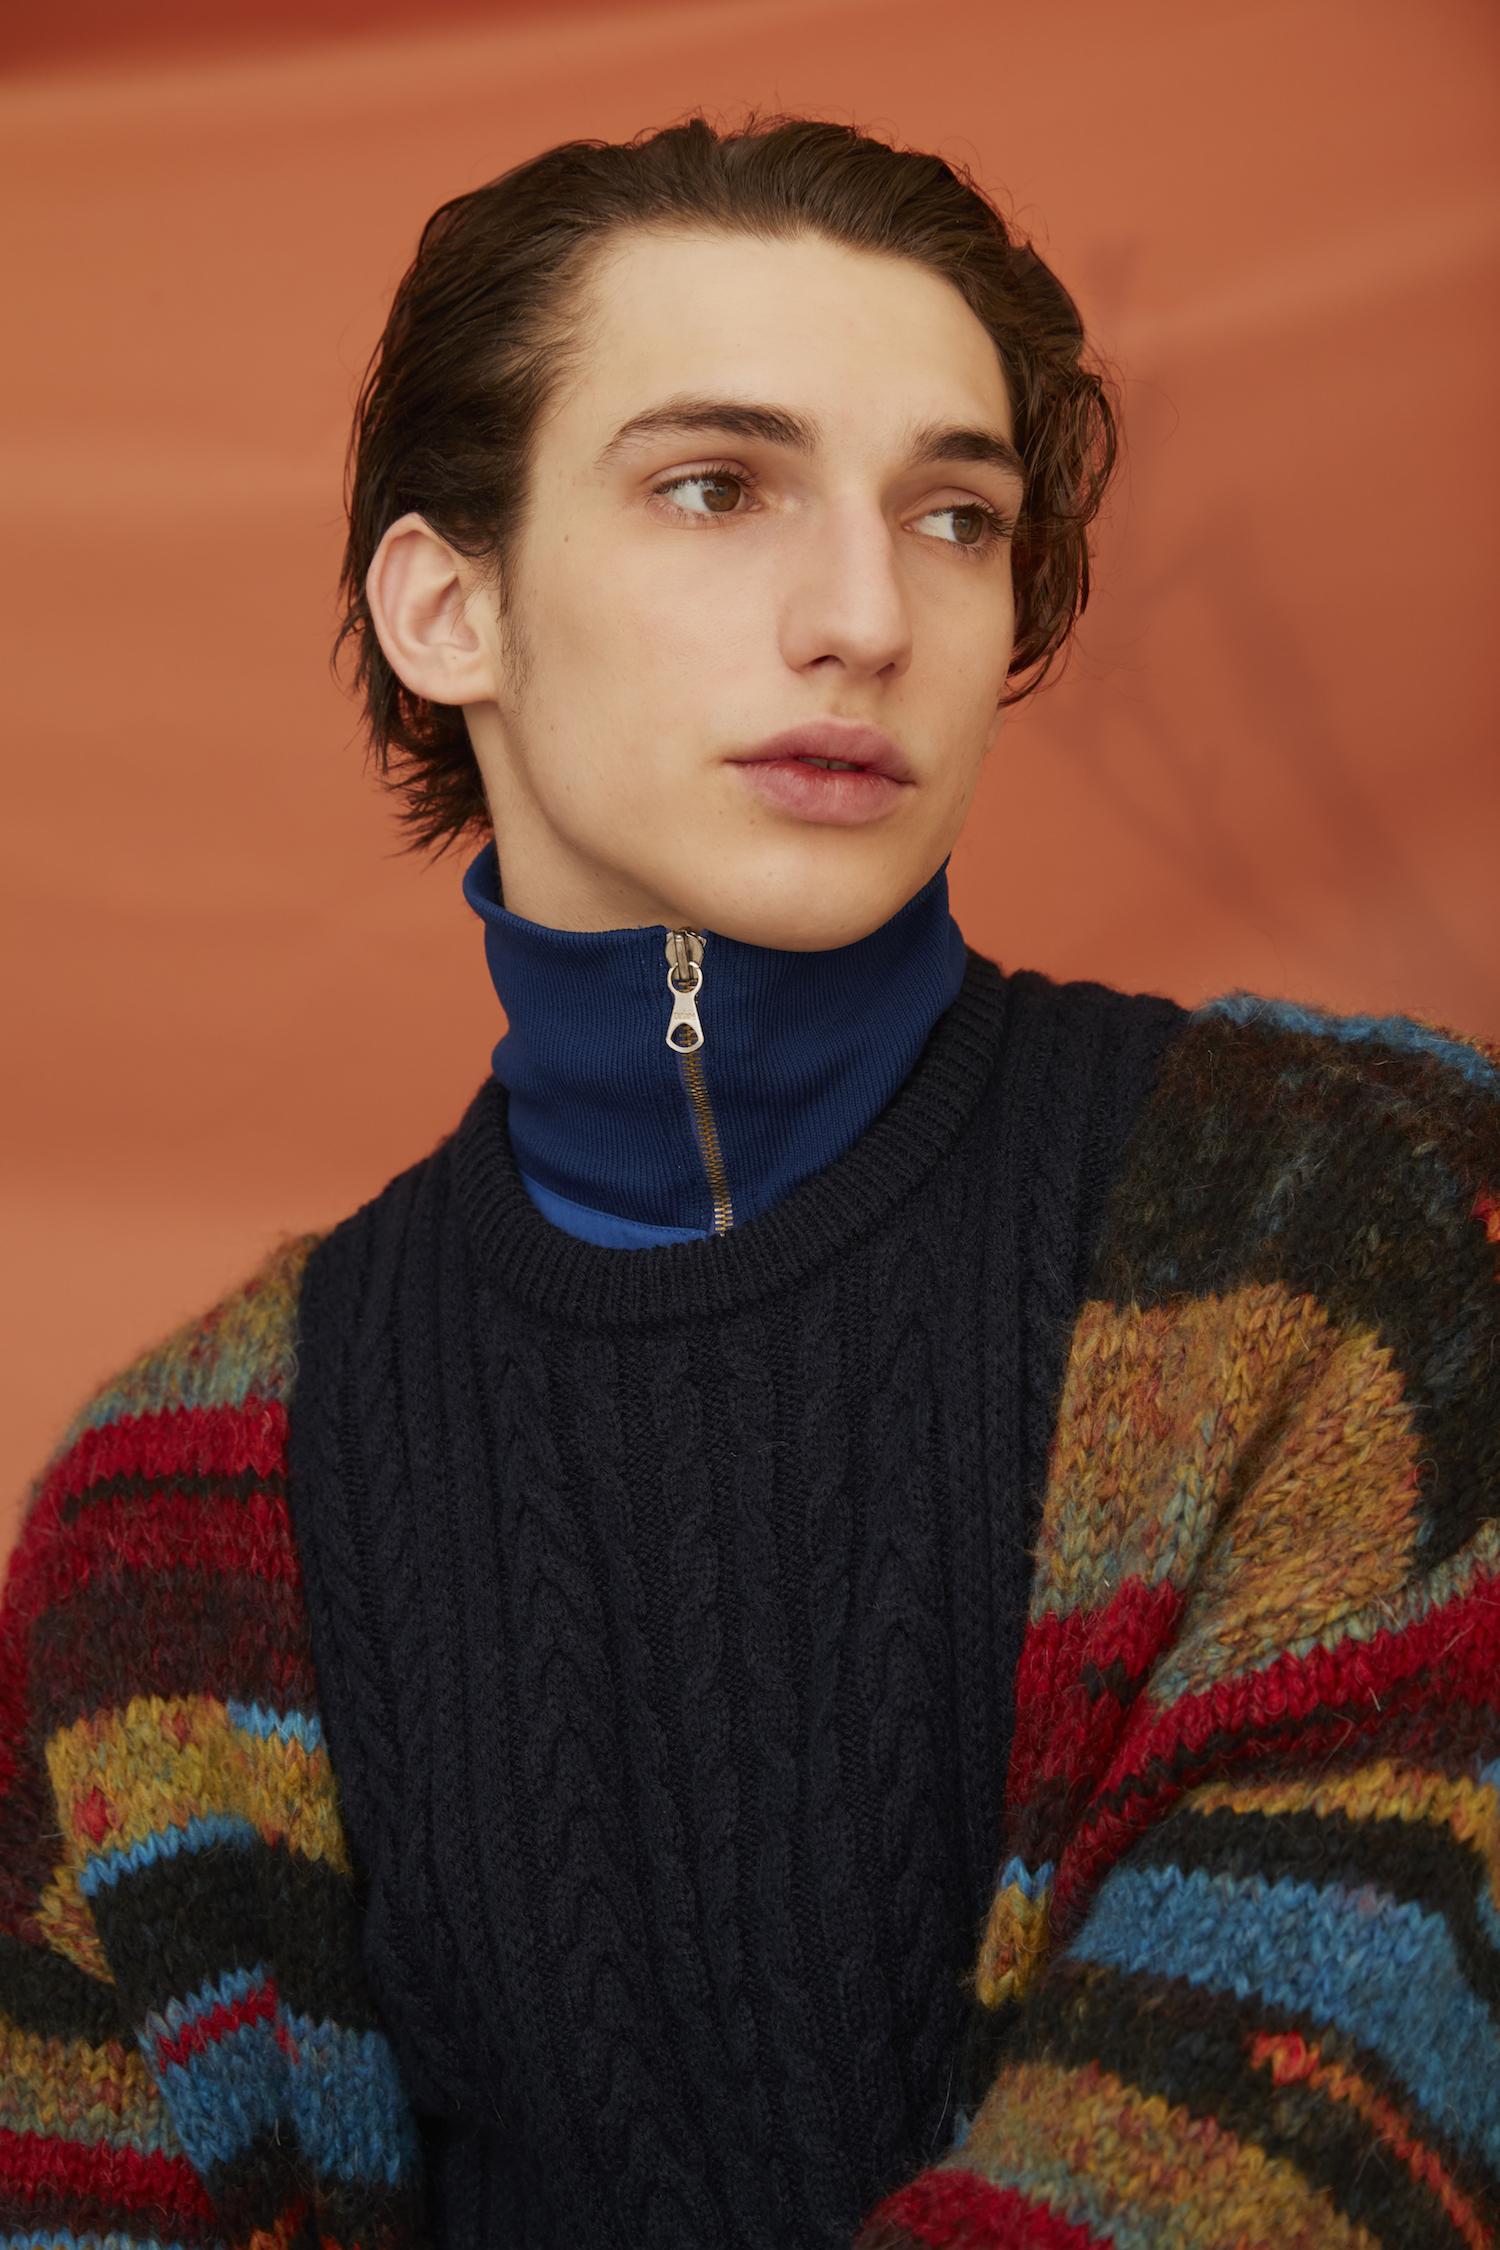 View Urban Outfitter's AW18 Lookbook Here